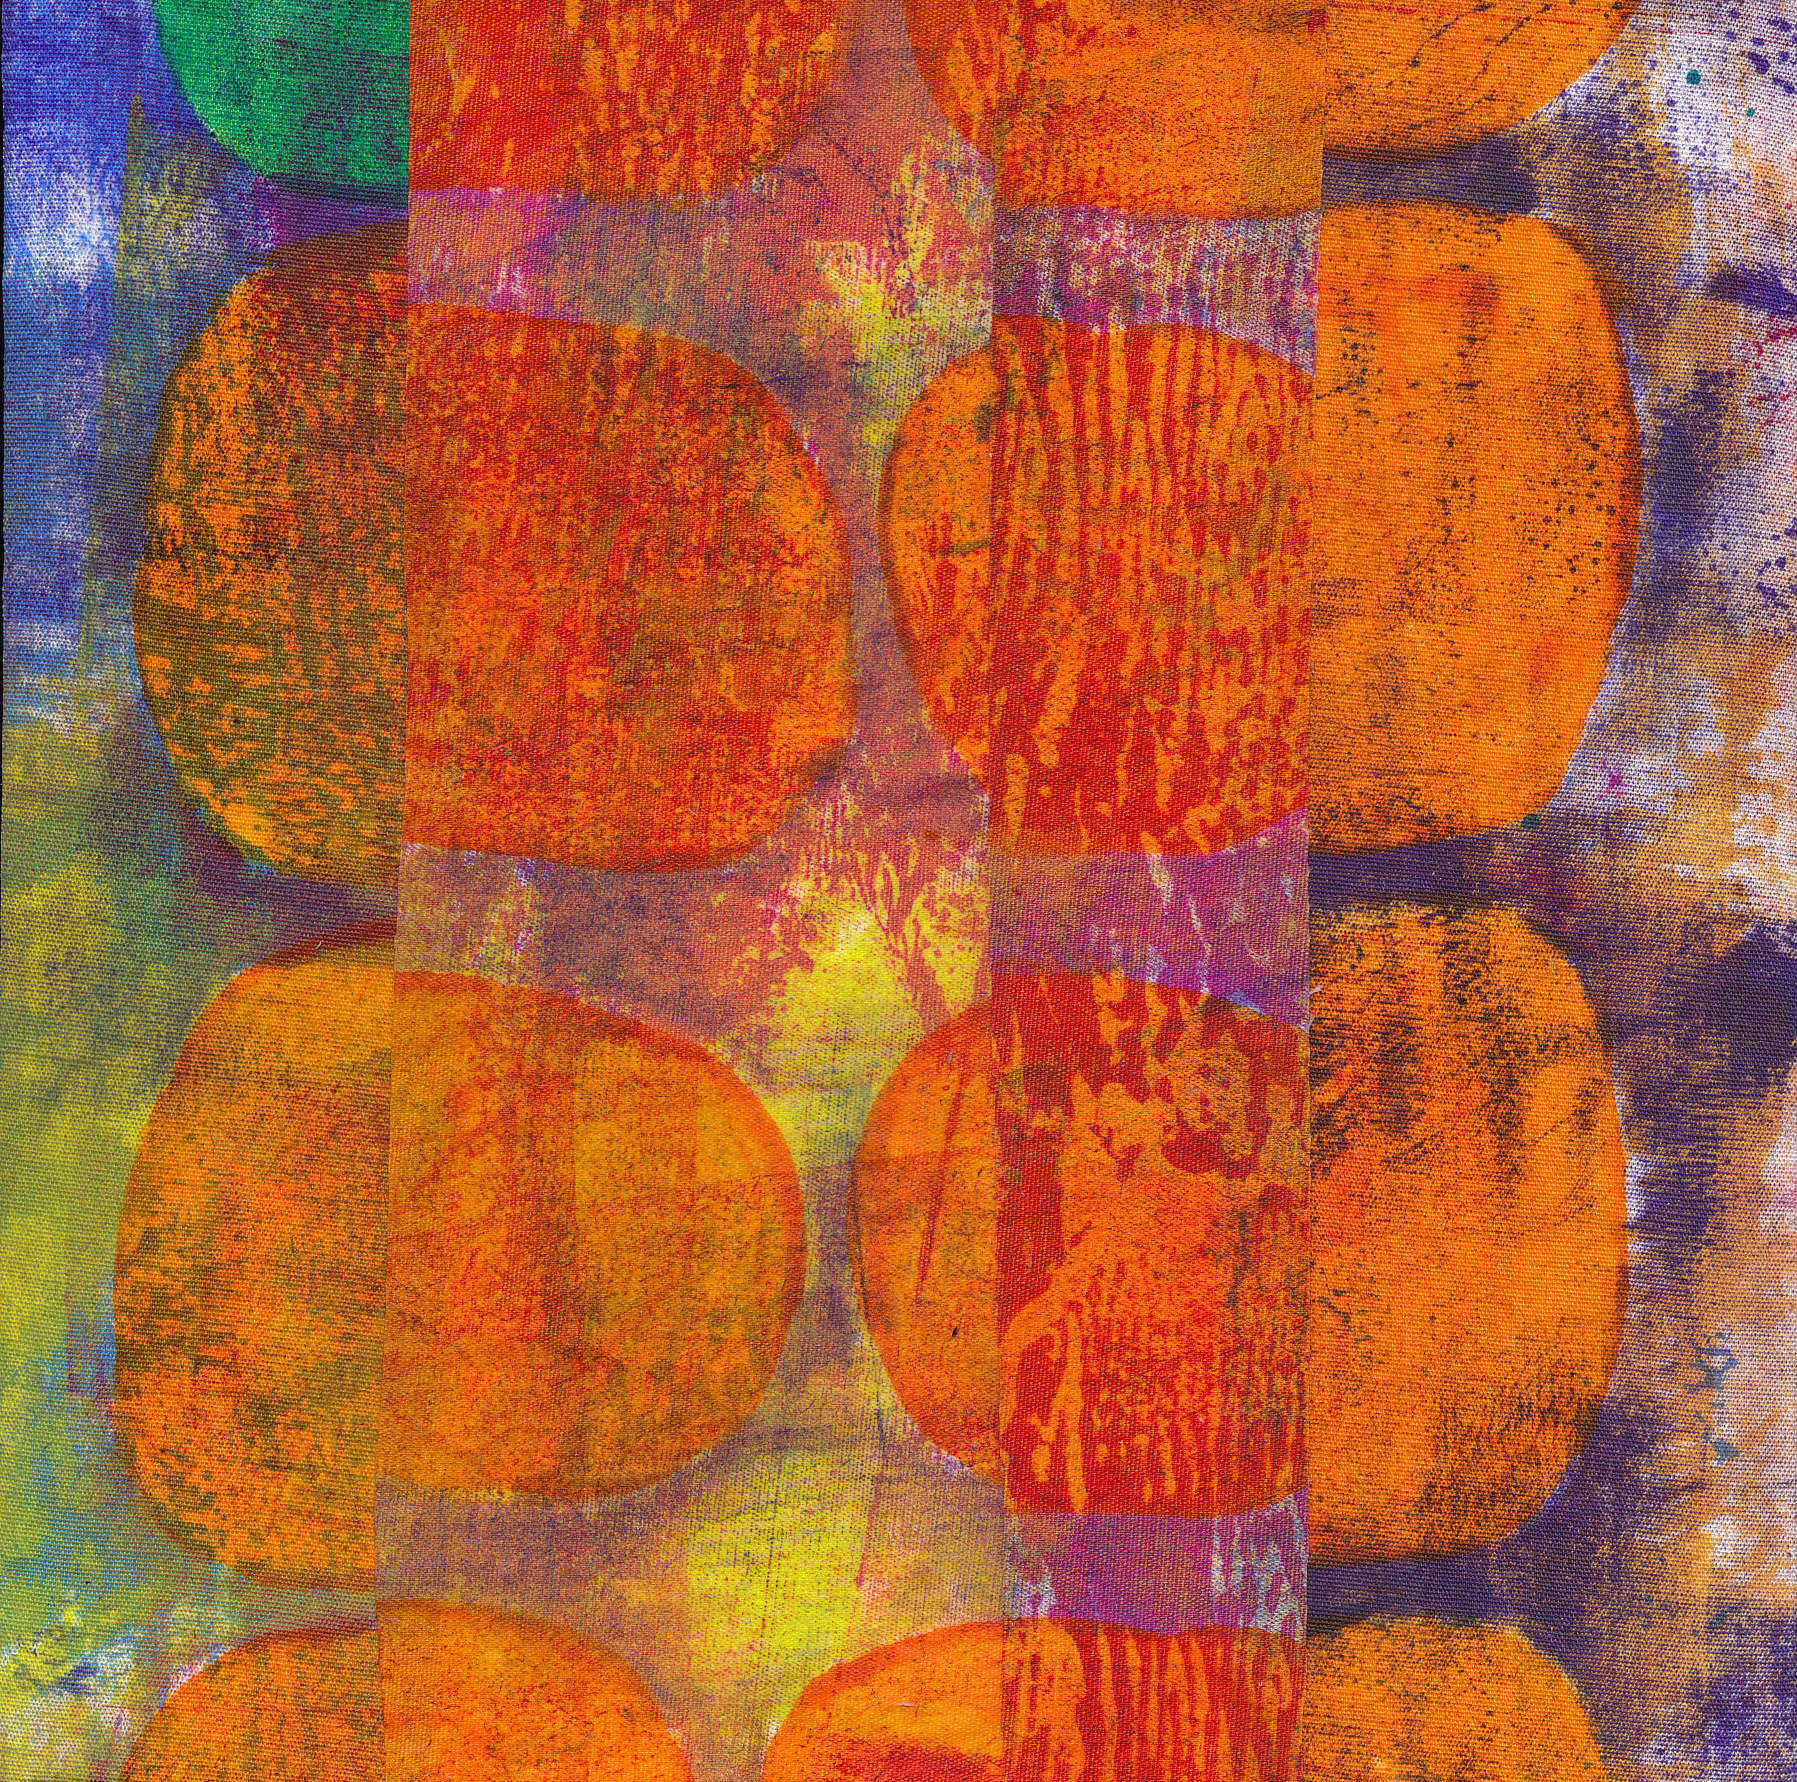 Jeanne Williamson,  Fragments from Ice on Fences #1 , mixed media on board, 6x6